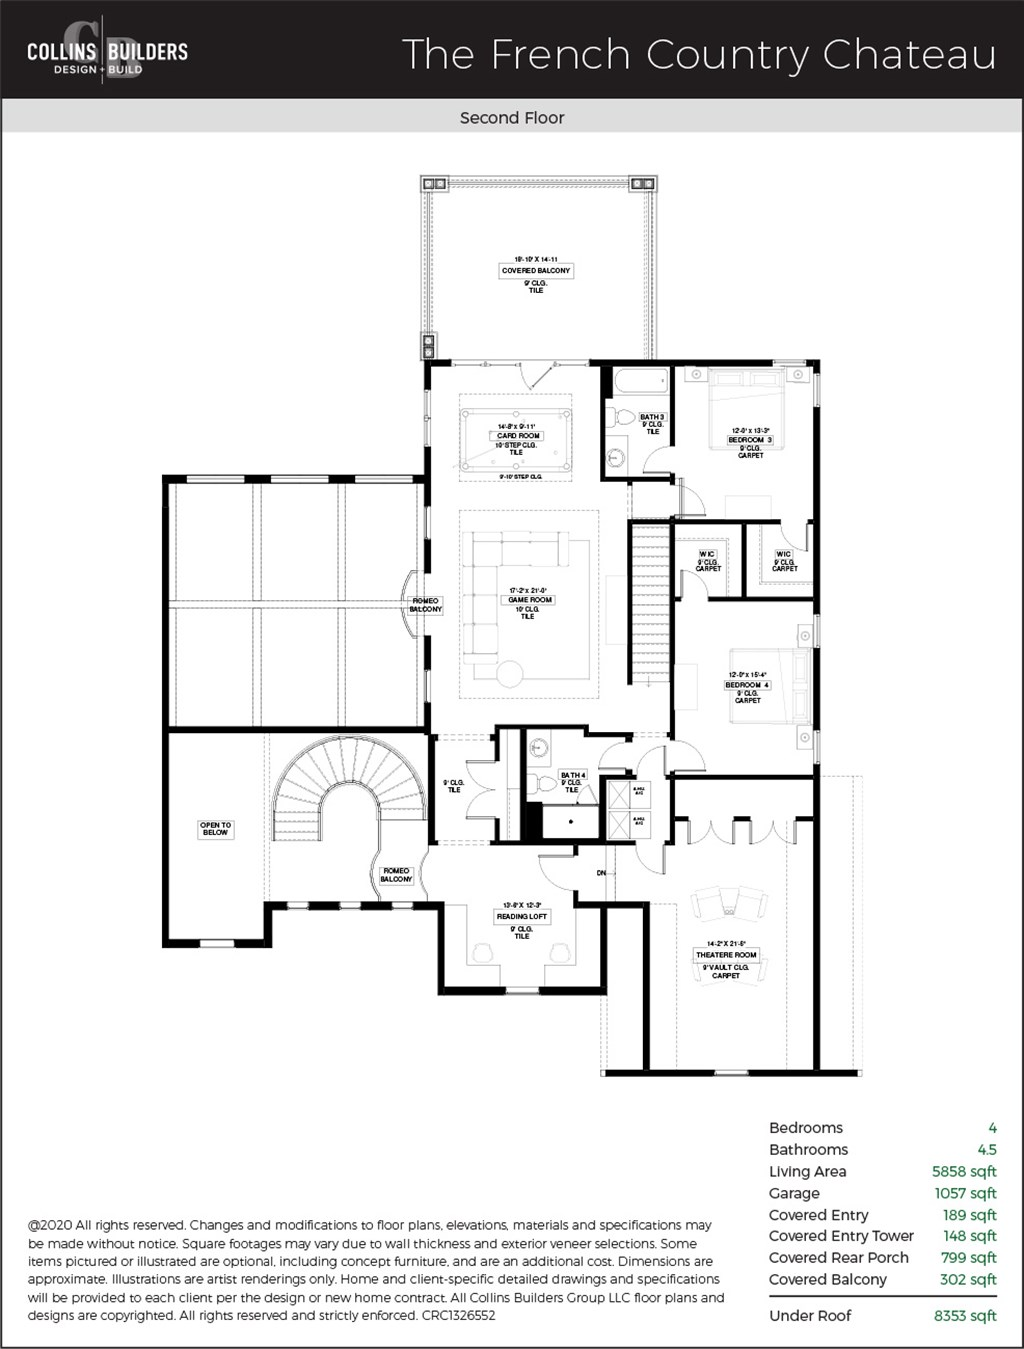 Floor Plan The French County Chateau Second Floor